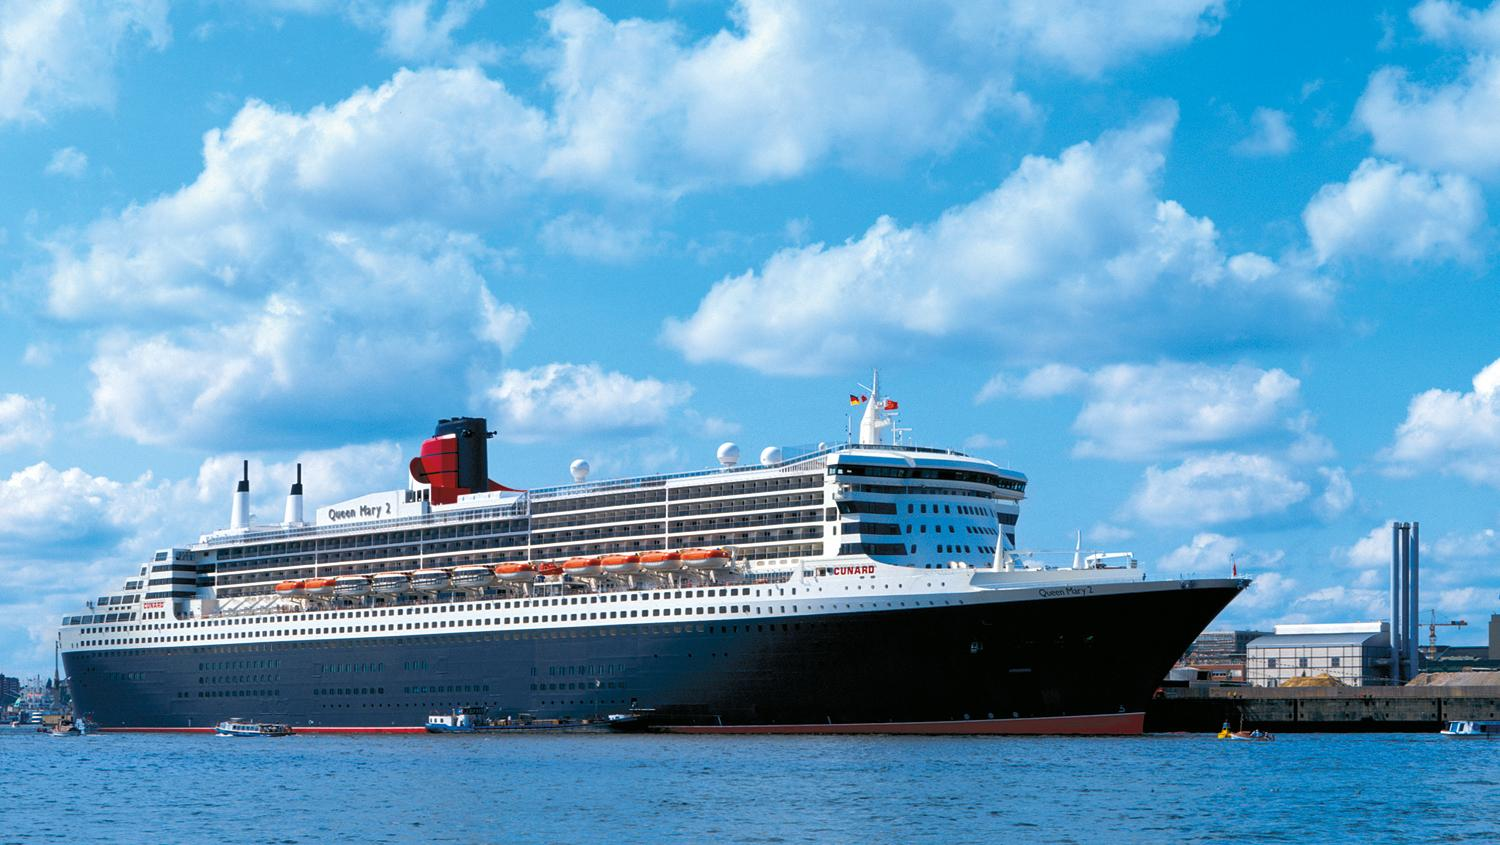 No cruises until July: Cunard's Queen Mary.